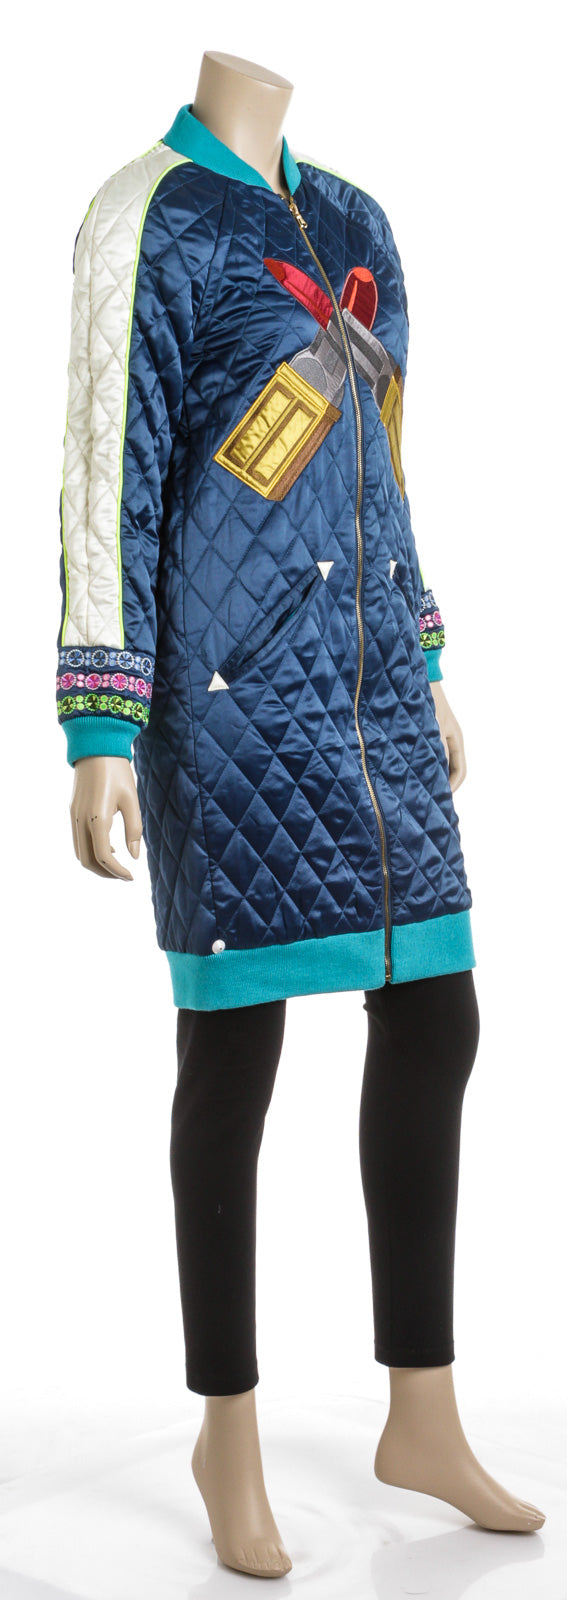 House of Holland Long Sleeve Colorblock Quilted Lipstick Coat (Size 6)